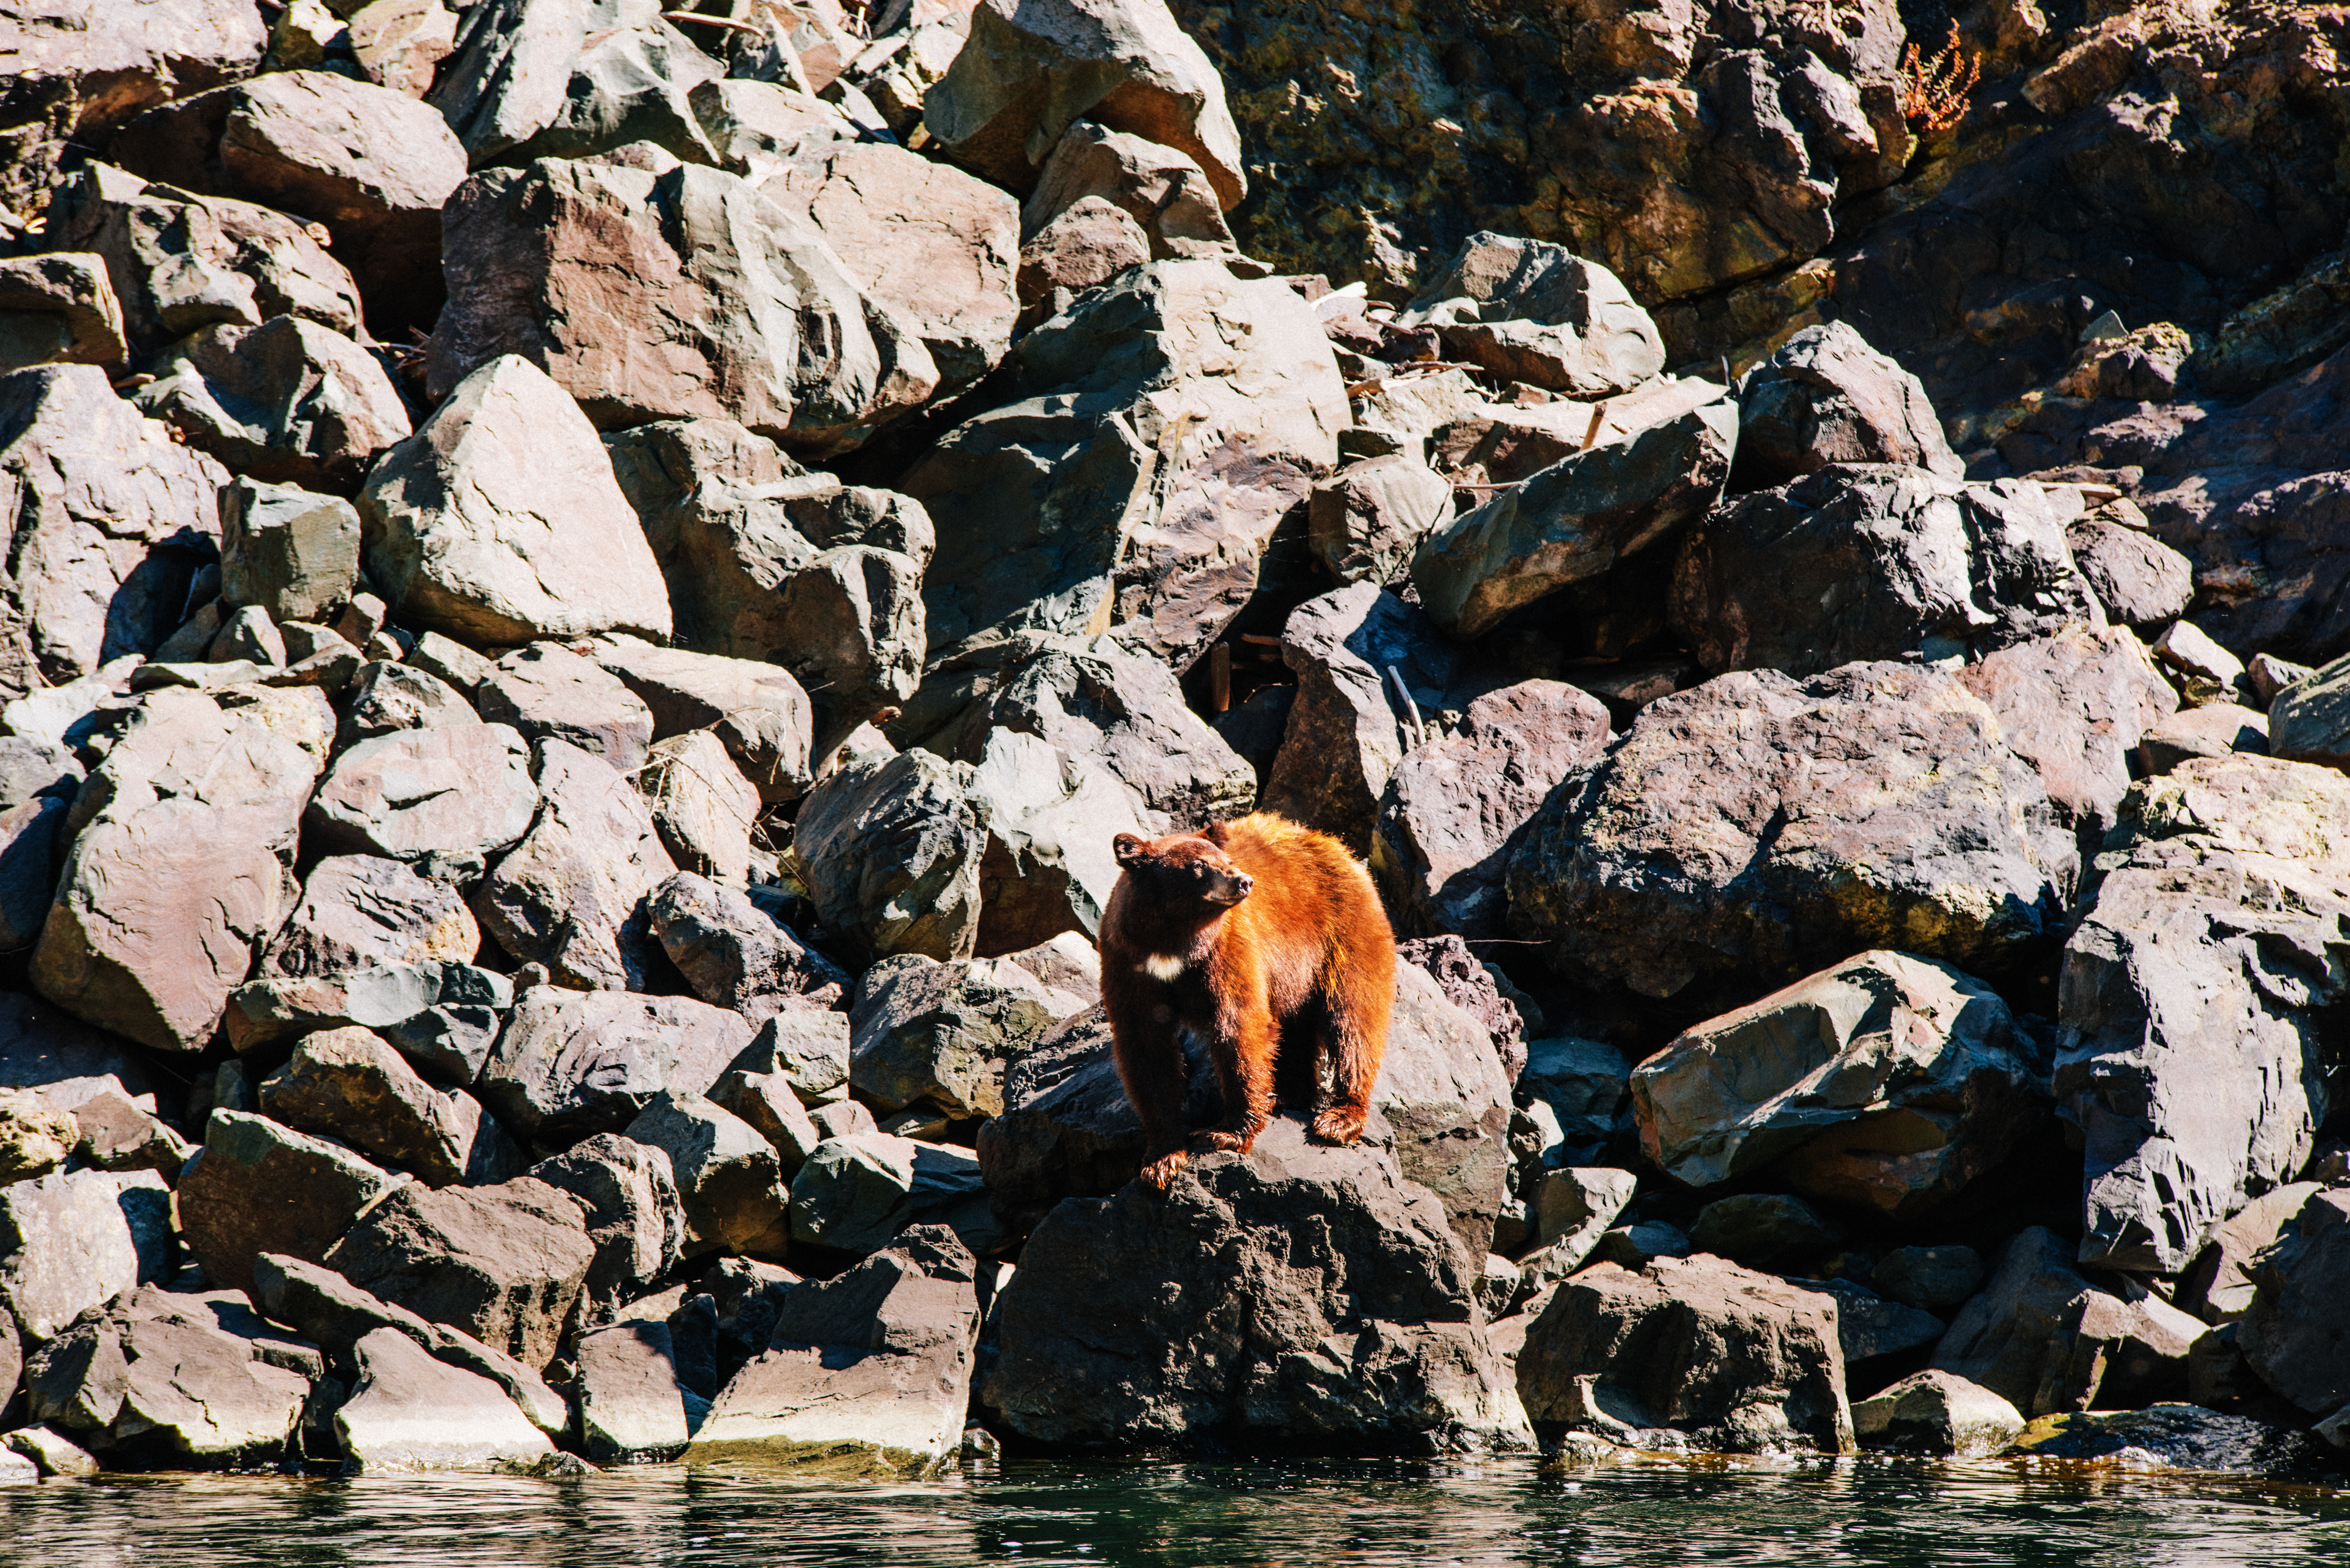 A bear ready for a dip in Hells Canyon. Photo Credit: Idaho Tourism